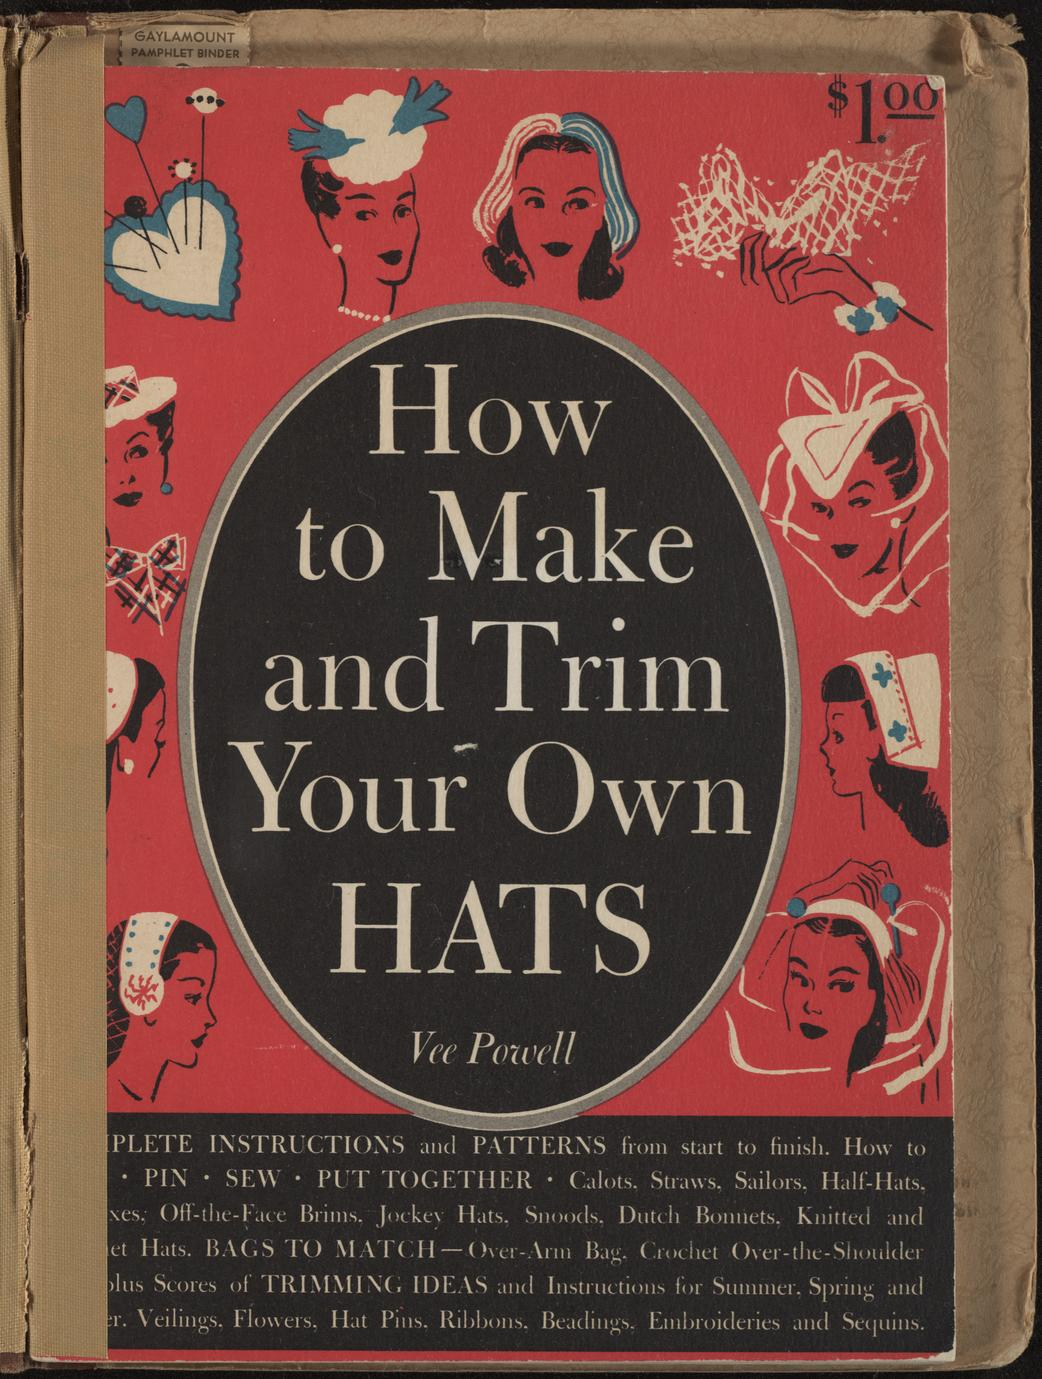 How to make and trim your own hats